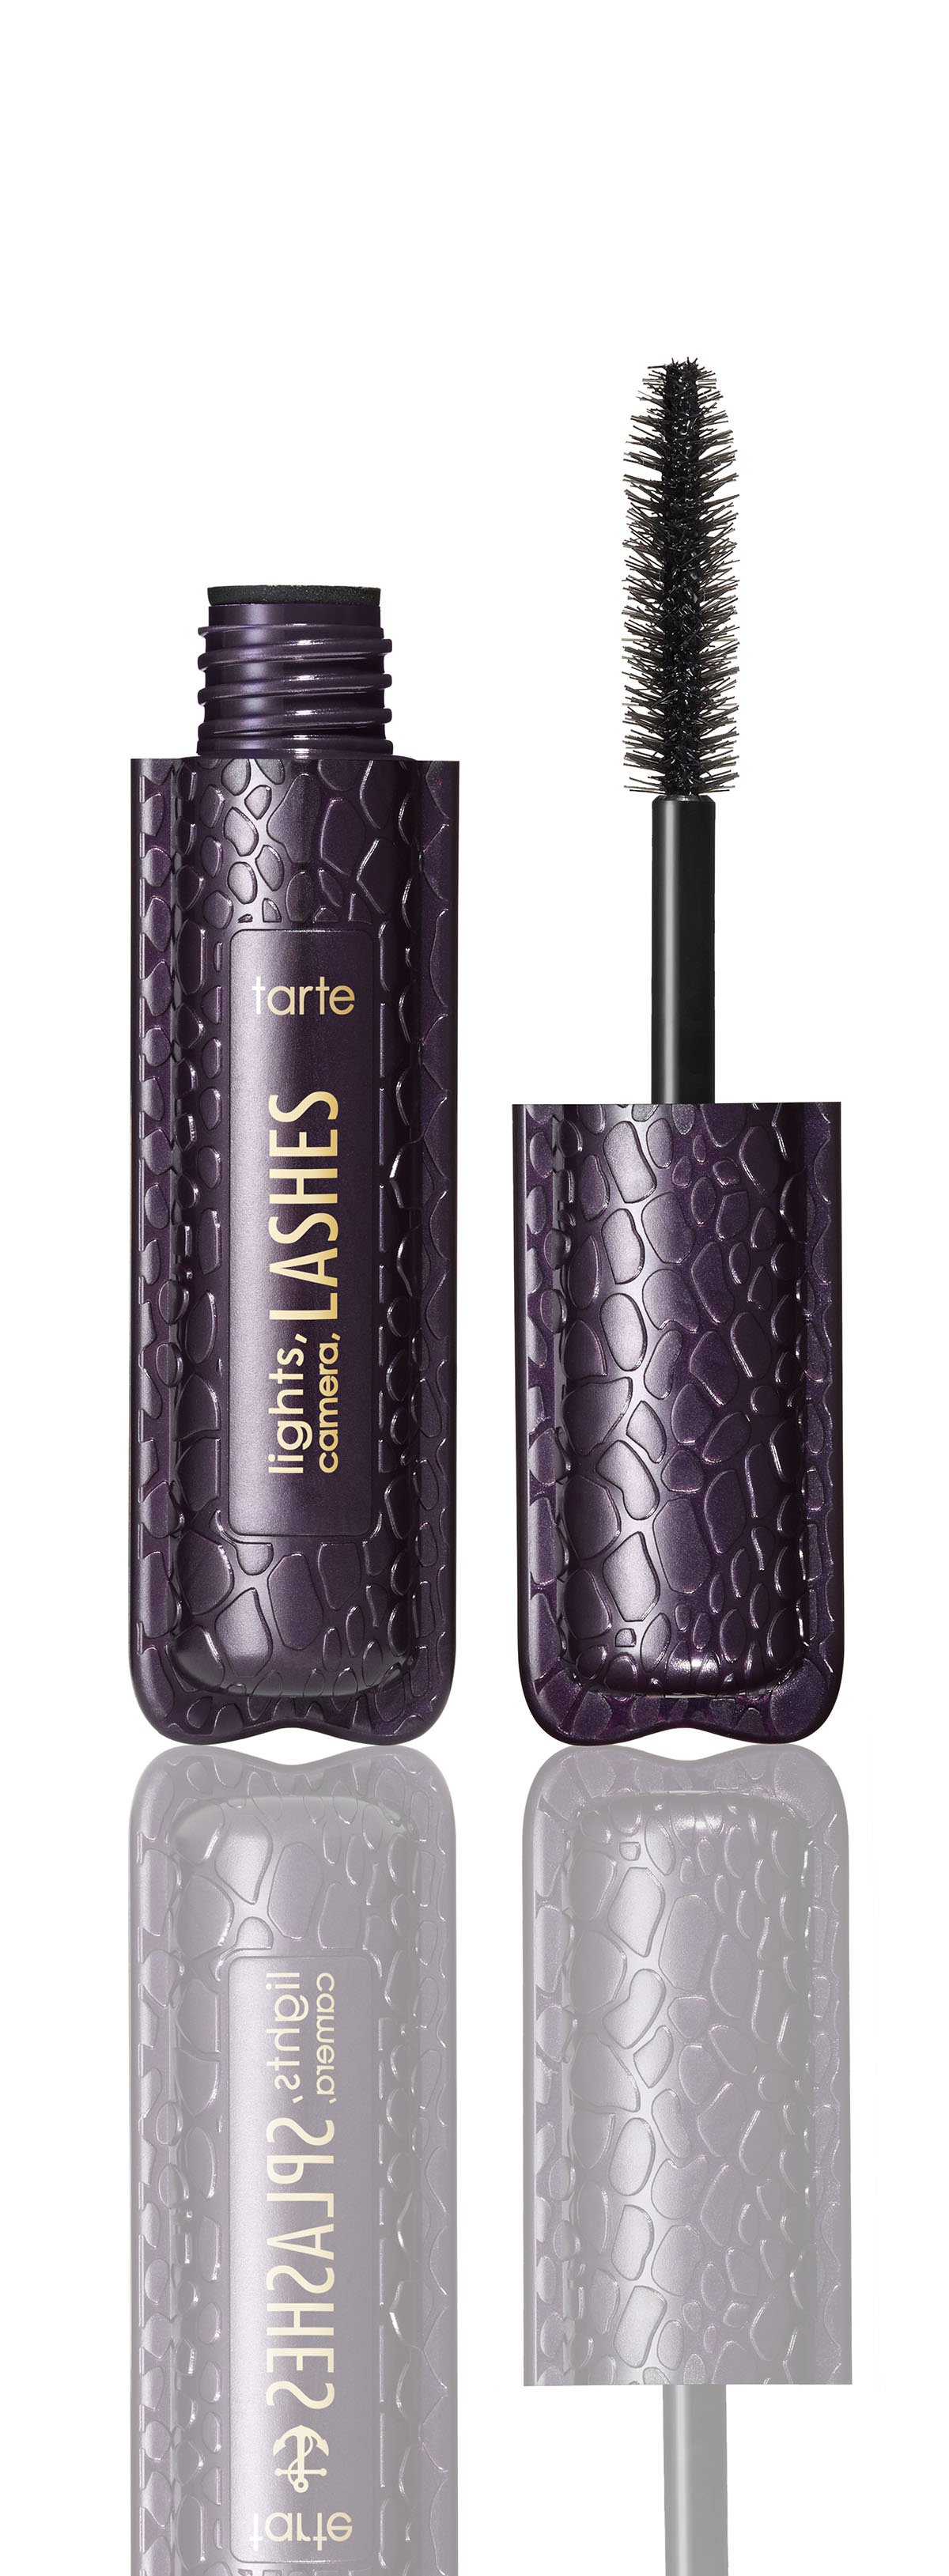 Tarte To Go Deluxe Lights Camera Lashes 4 In 1 Mascara